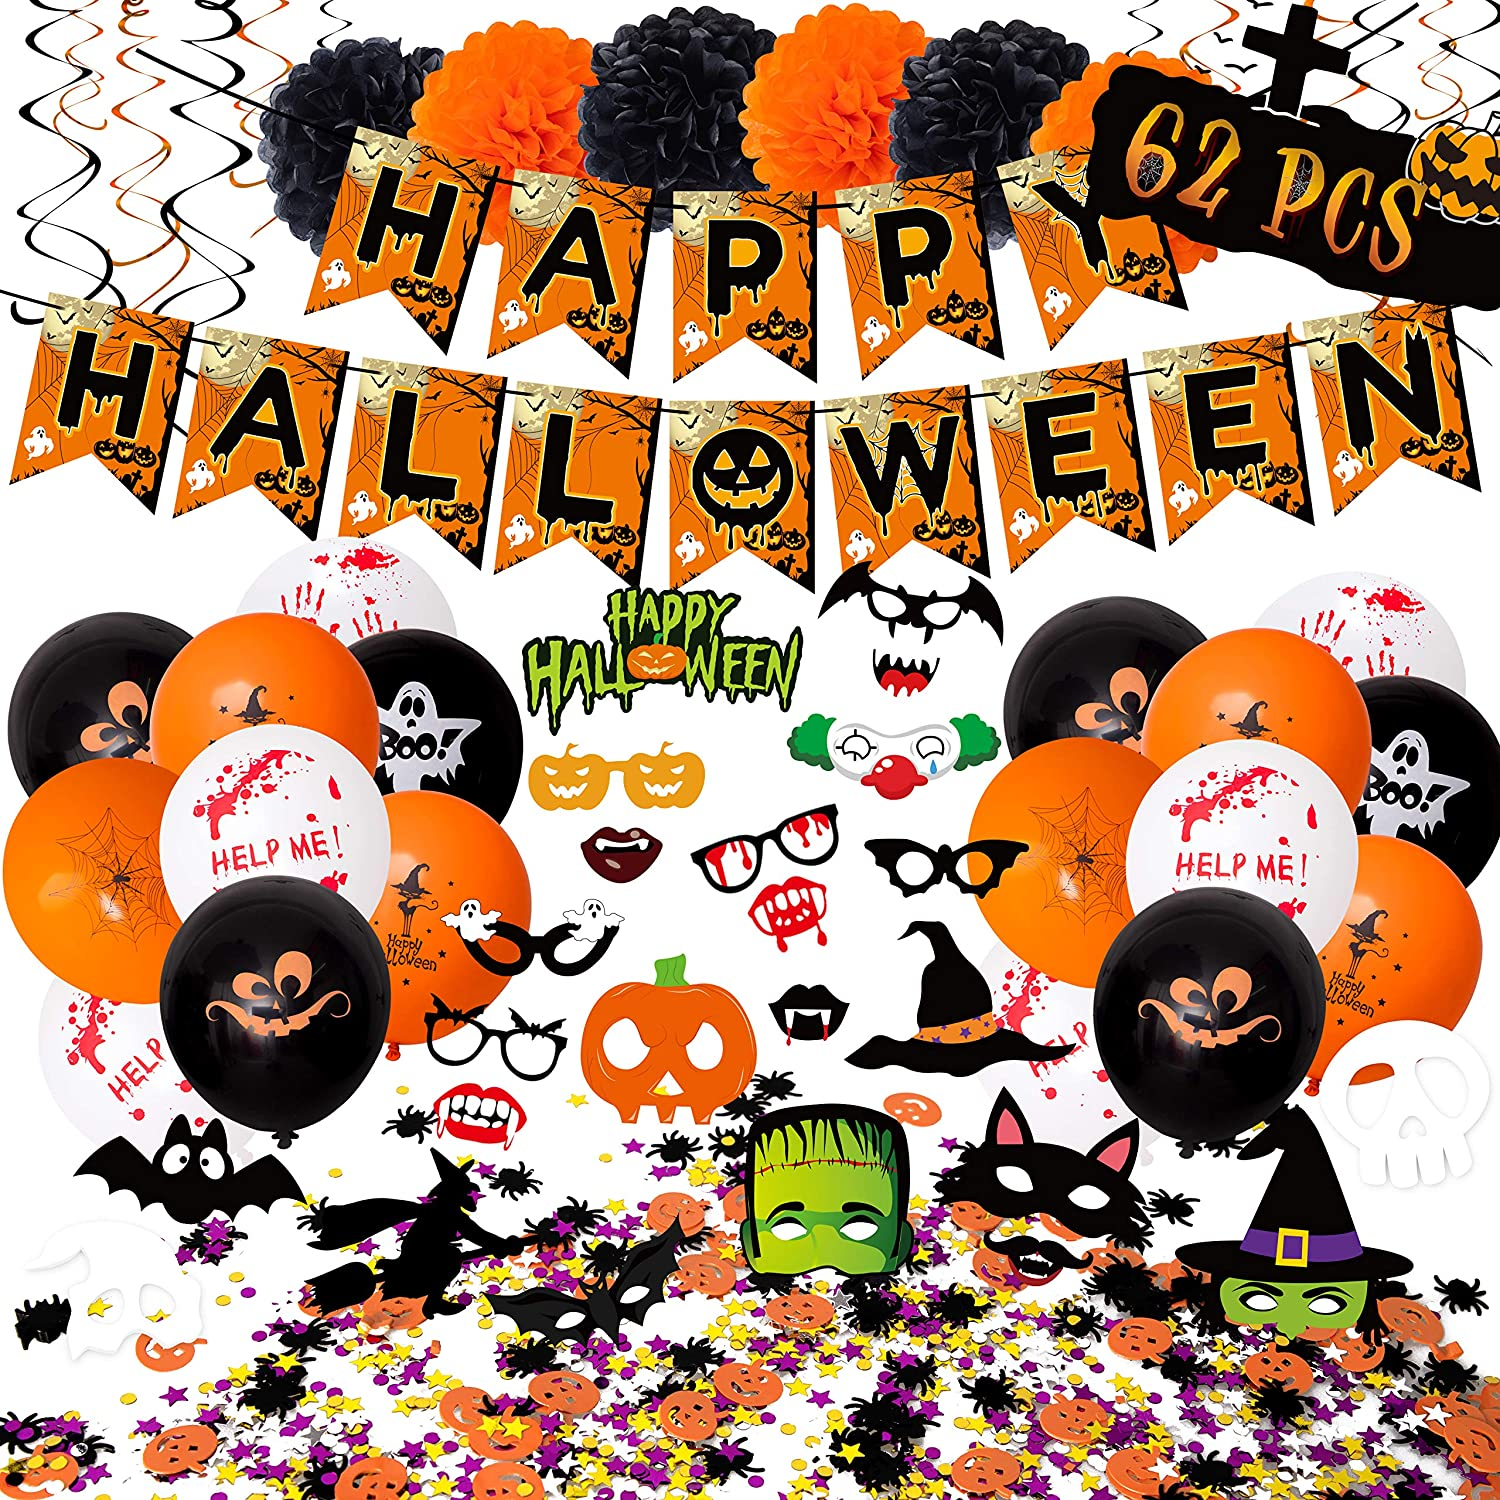 62PCS Halloween Party Decorations Set - Hallowmas Photo Booth Props Banner Balloons Pom Poms Hanging Swirls Spider Pumpkin Ornaments Supplies: Kitchen & Dining